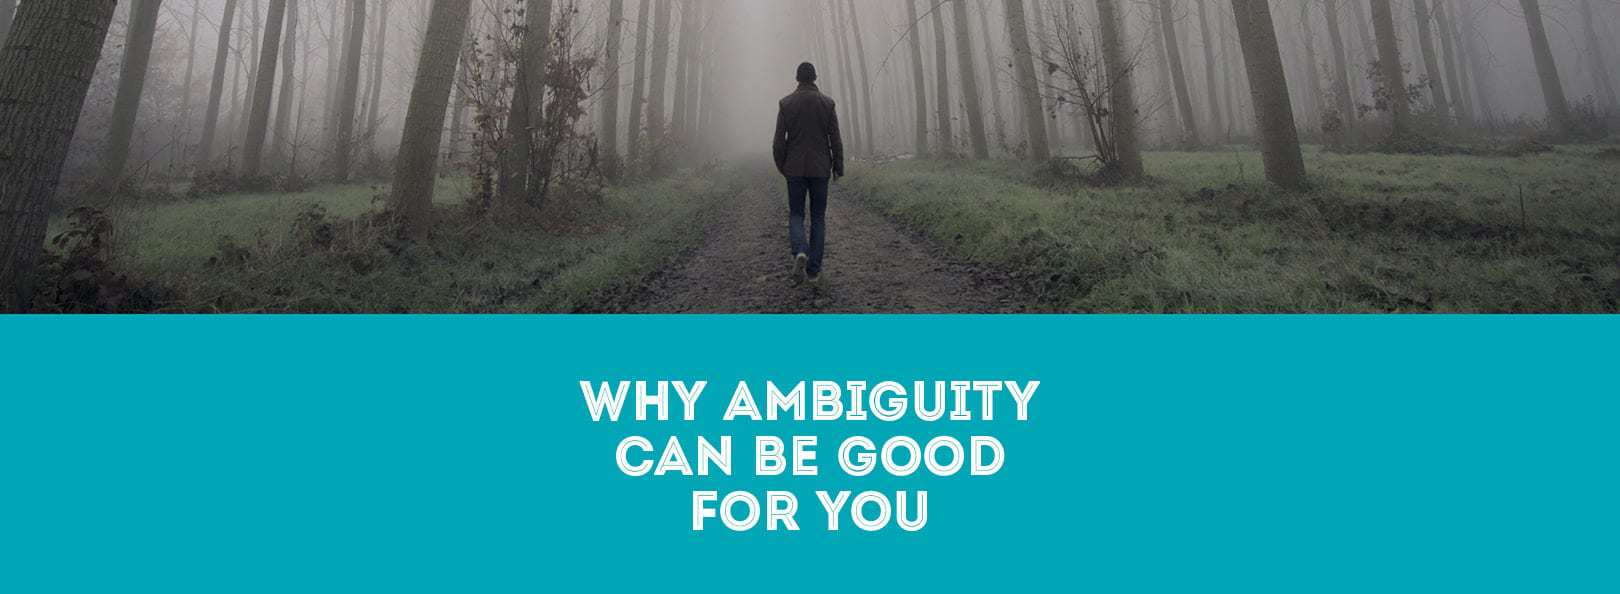 Why Ambiguity Can Be Good For You